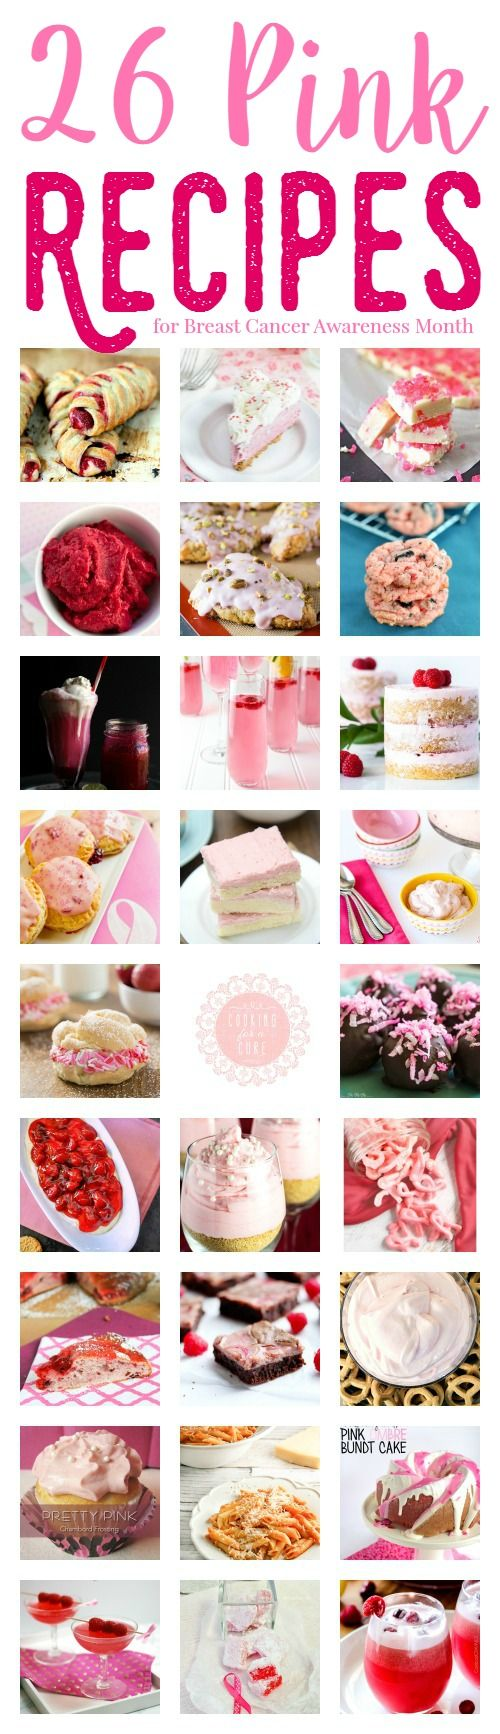 These pink recipes were made with love and honor of Breast Cancer Awareness Month- sweet treats, cold drinks and some savory dishes.